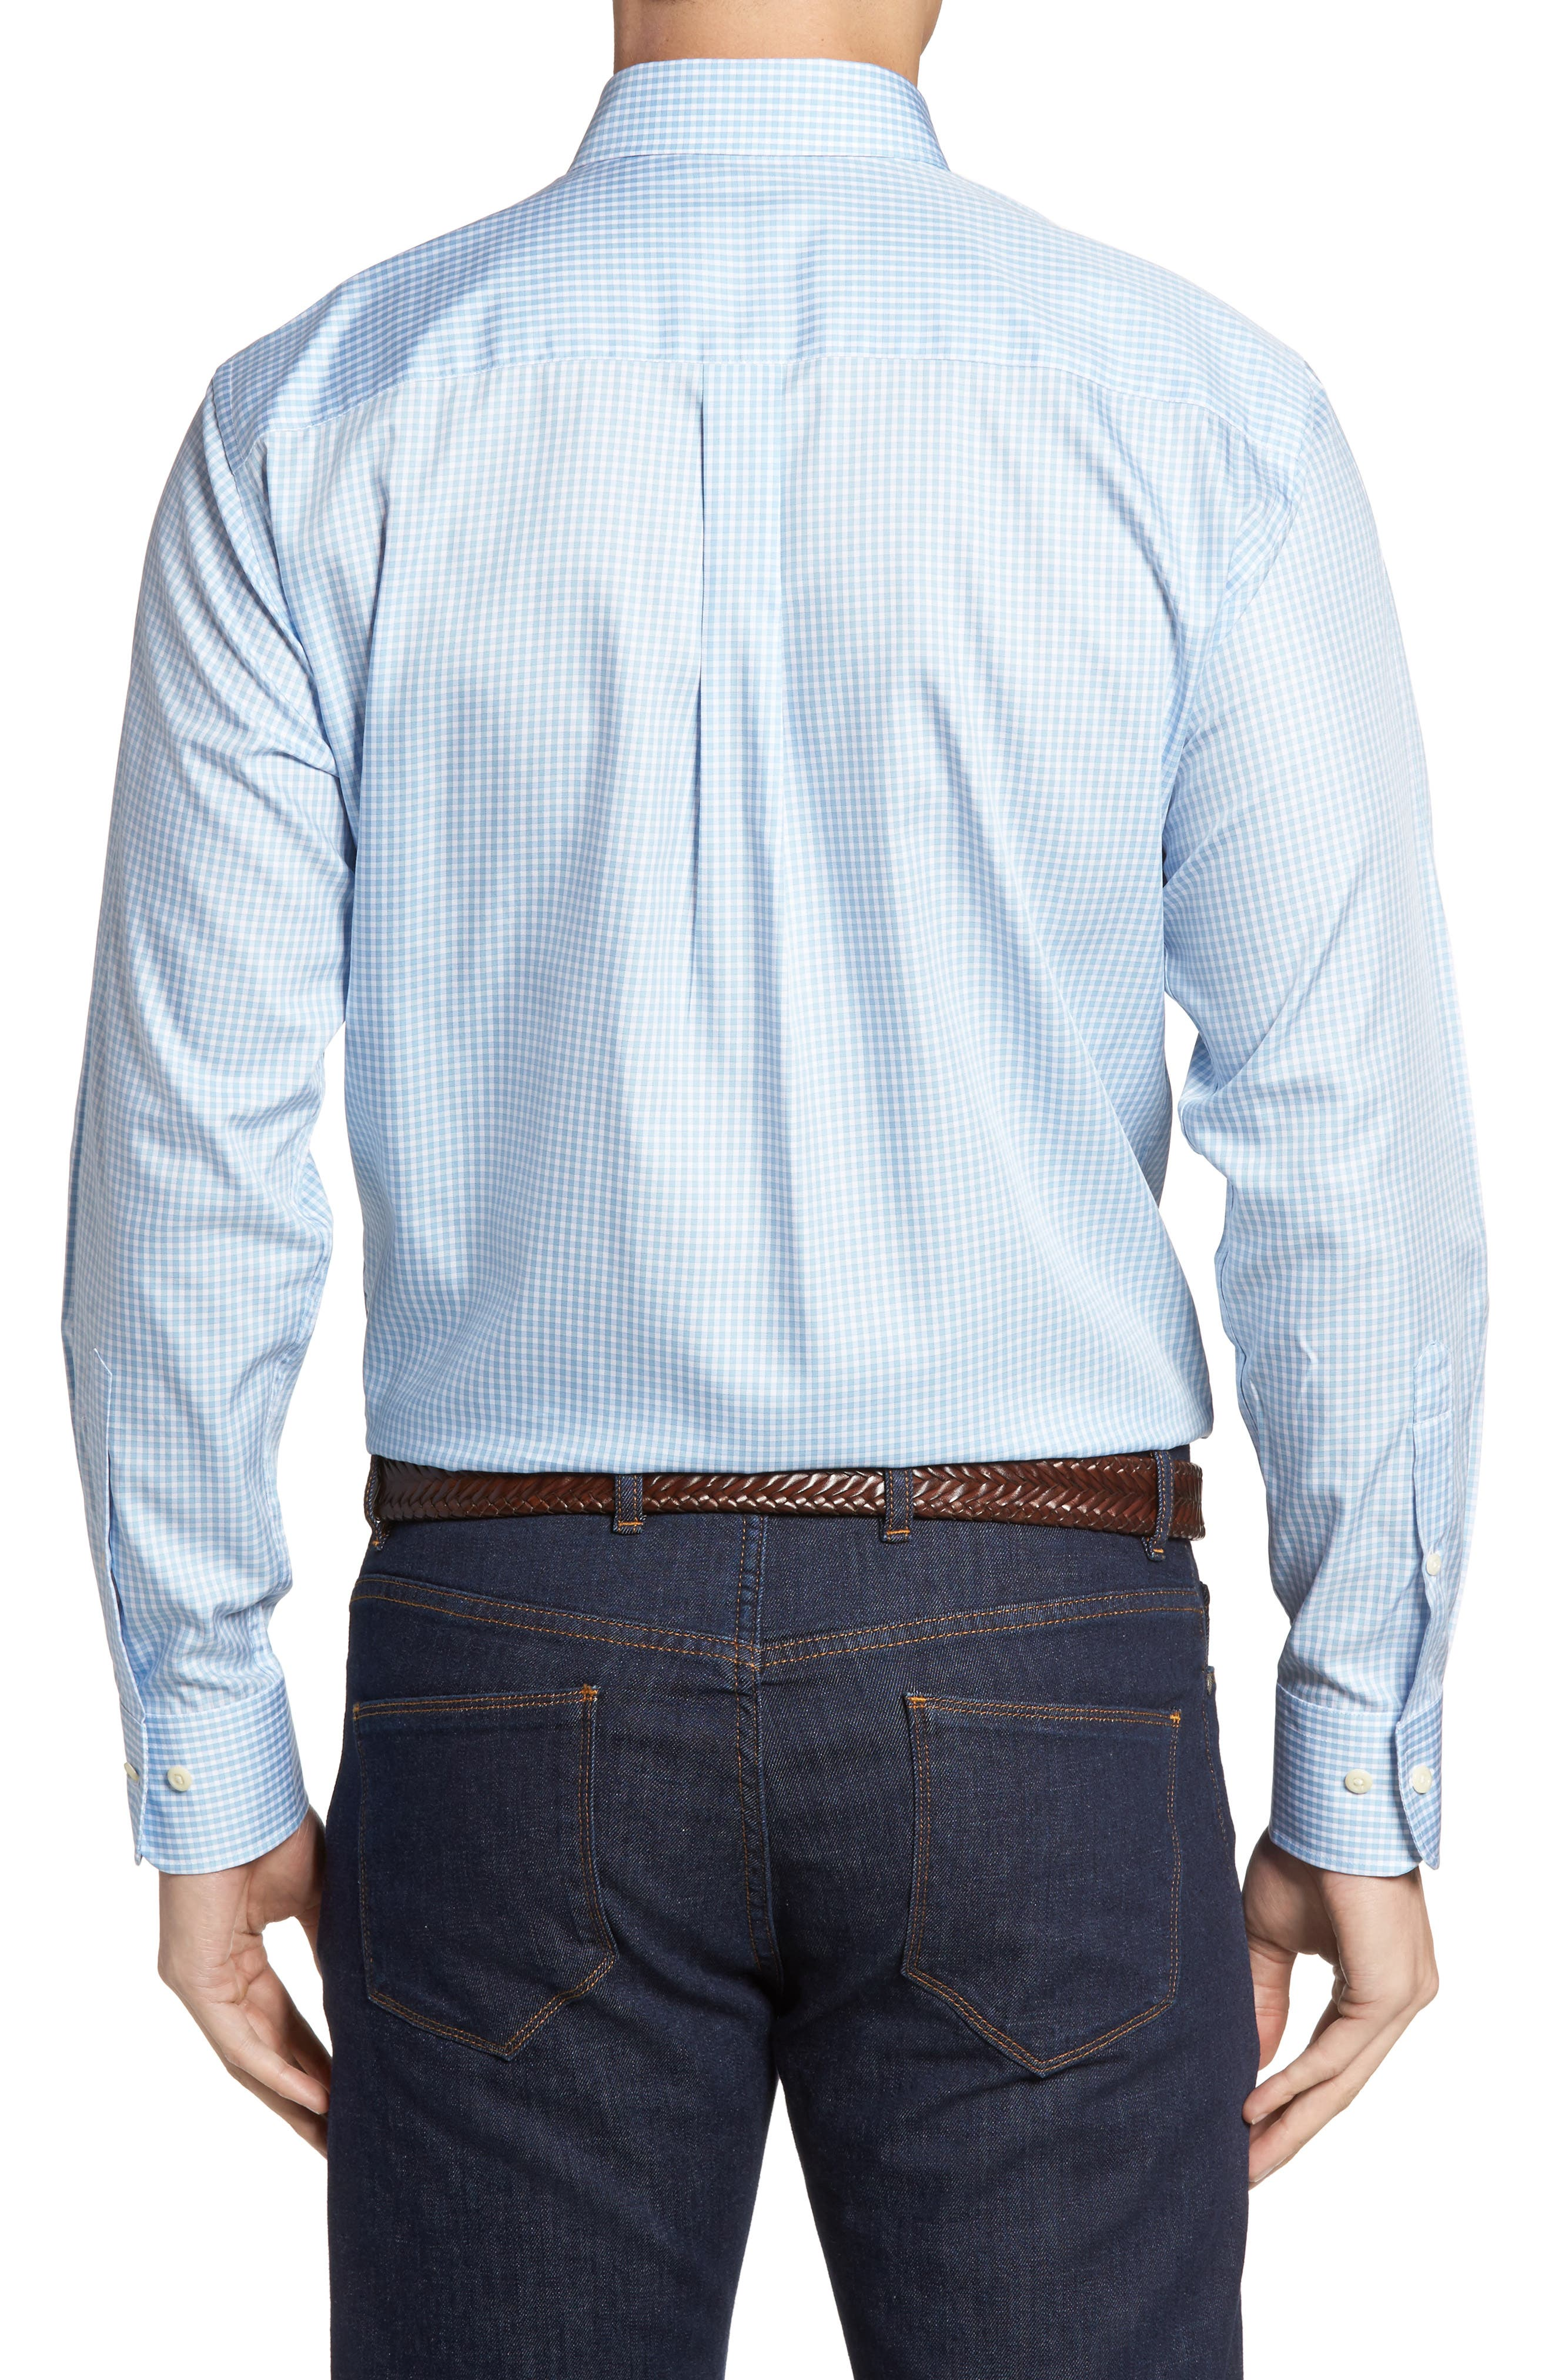 Crown Soft Gingham Regular Fit Sport Shirt,                             Alternate thumbnail 11, color,